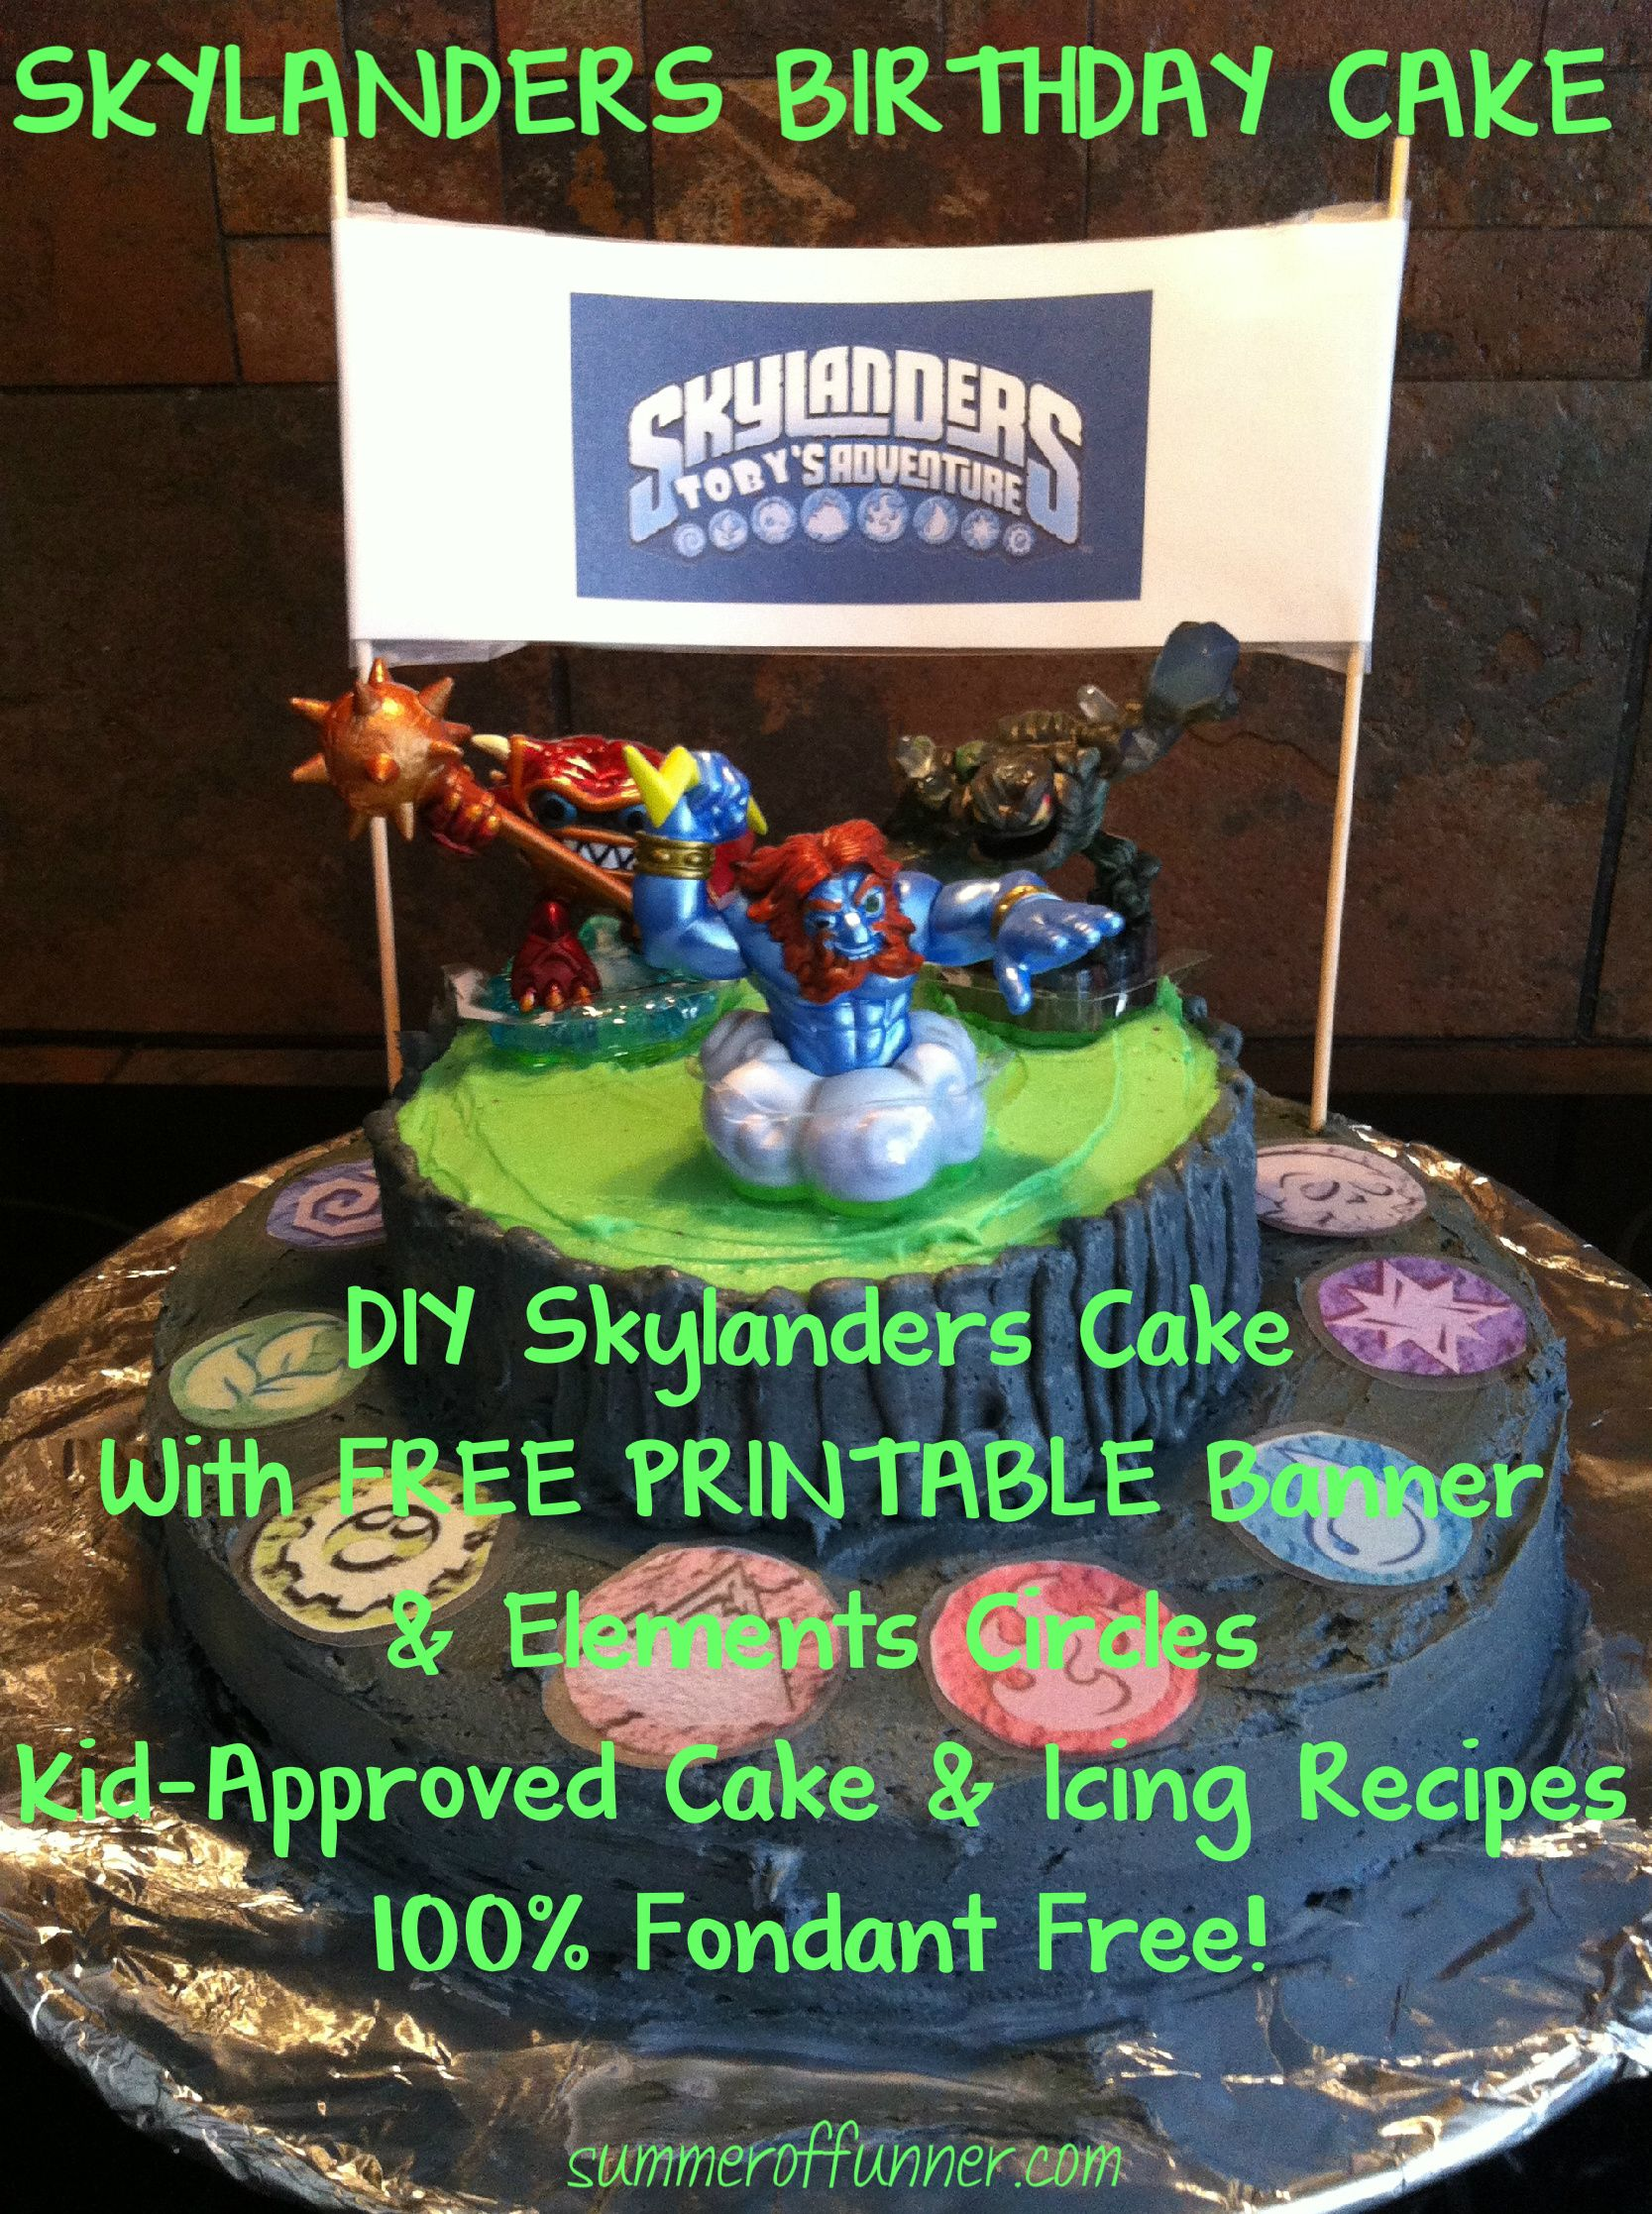 This year Tobes wanted a Skylanders themed cake for his birthday